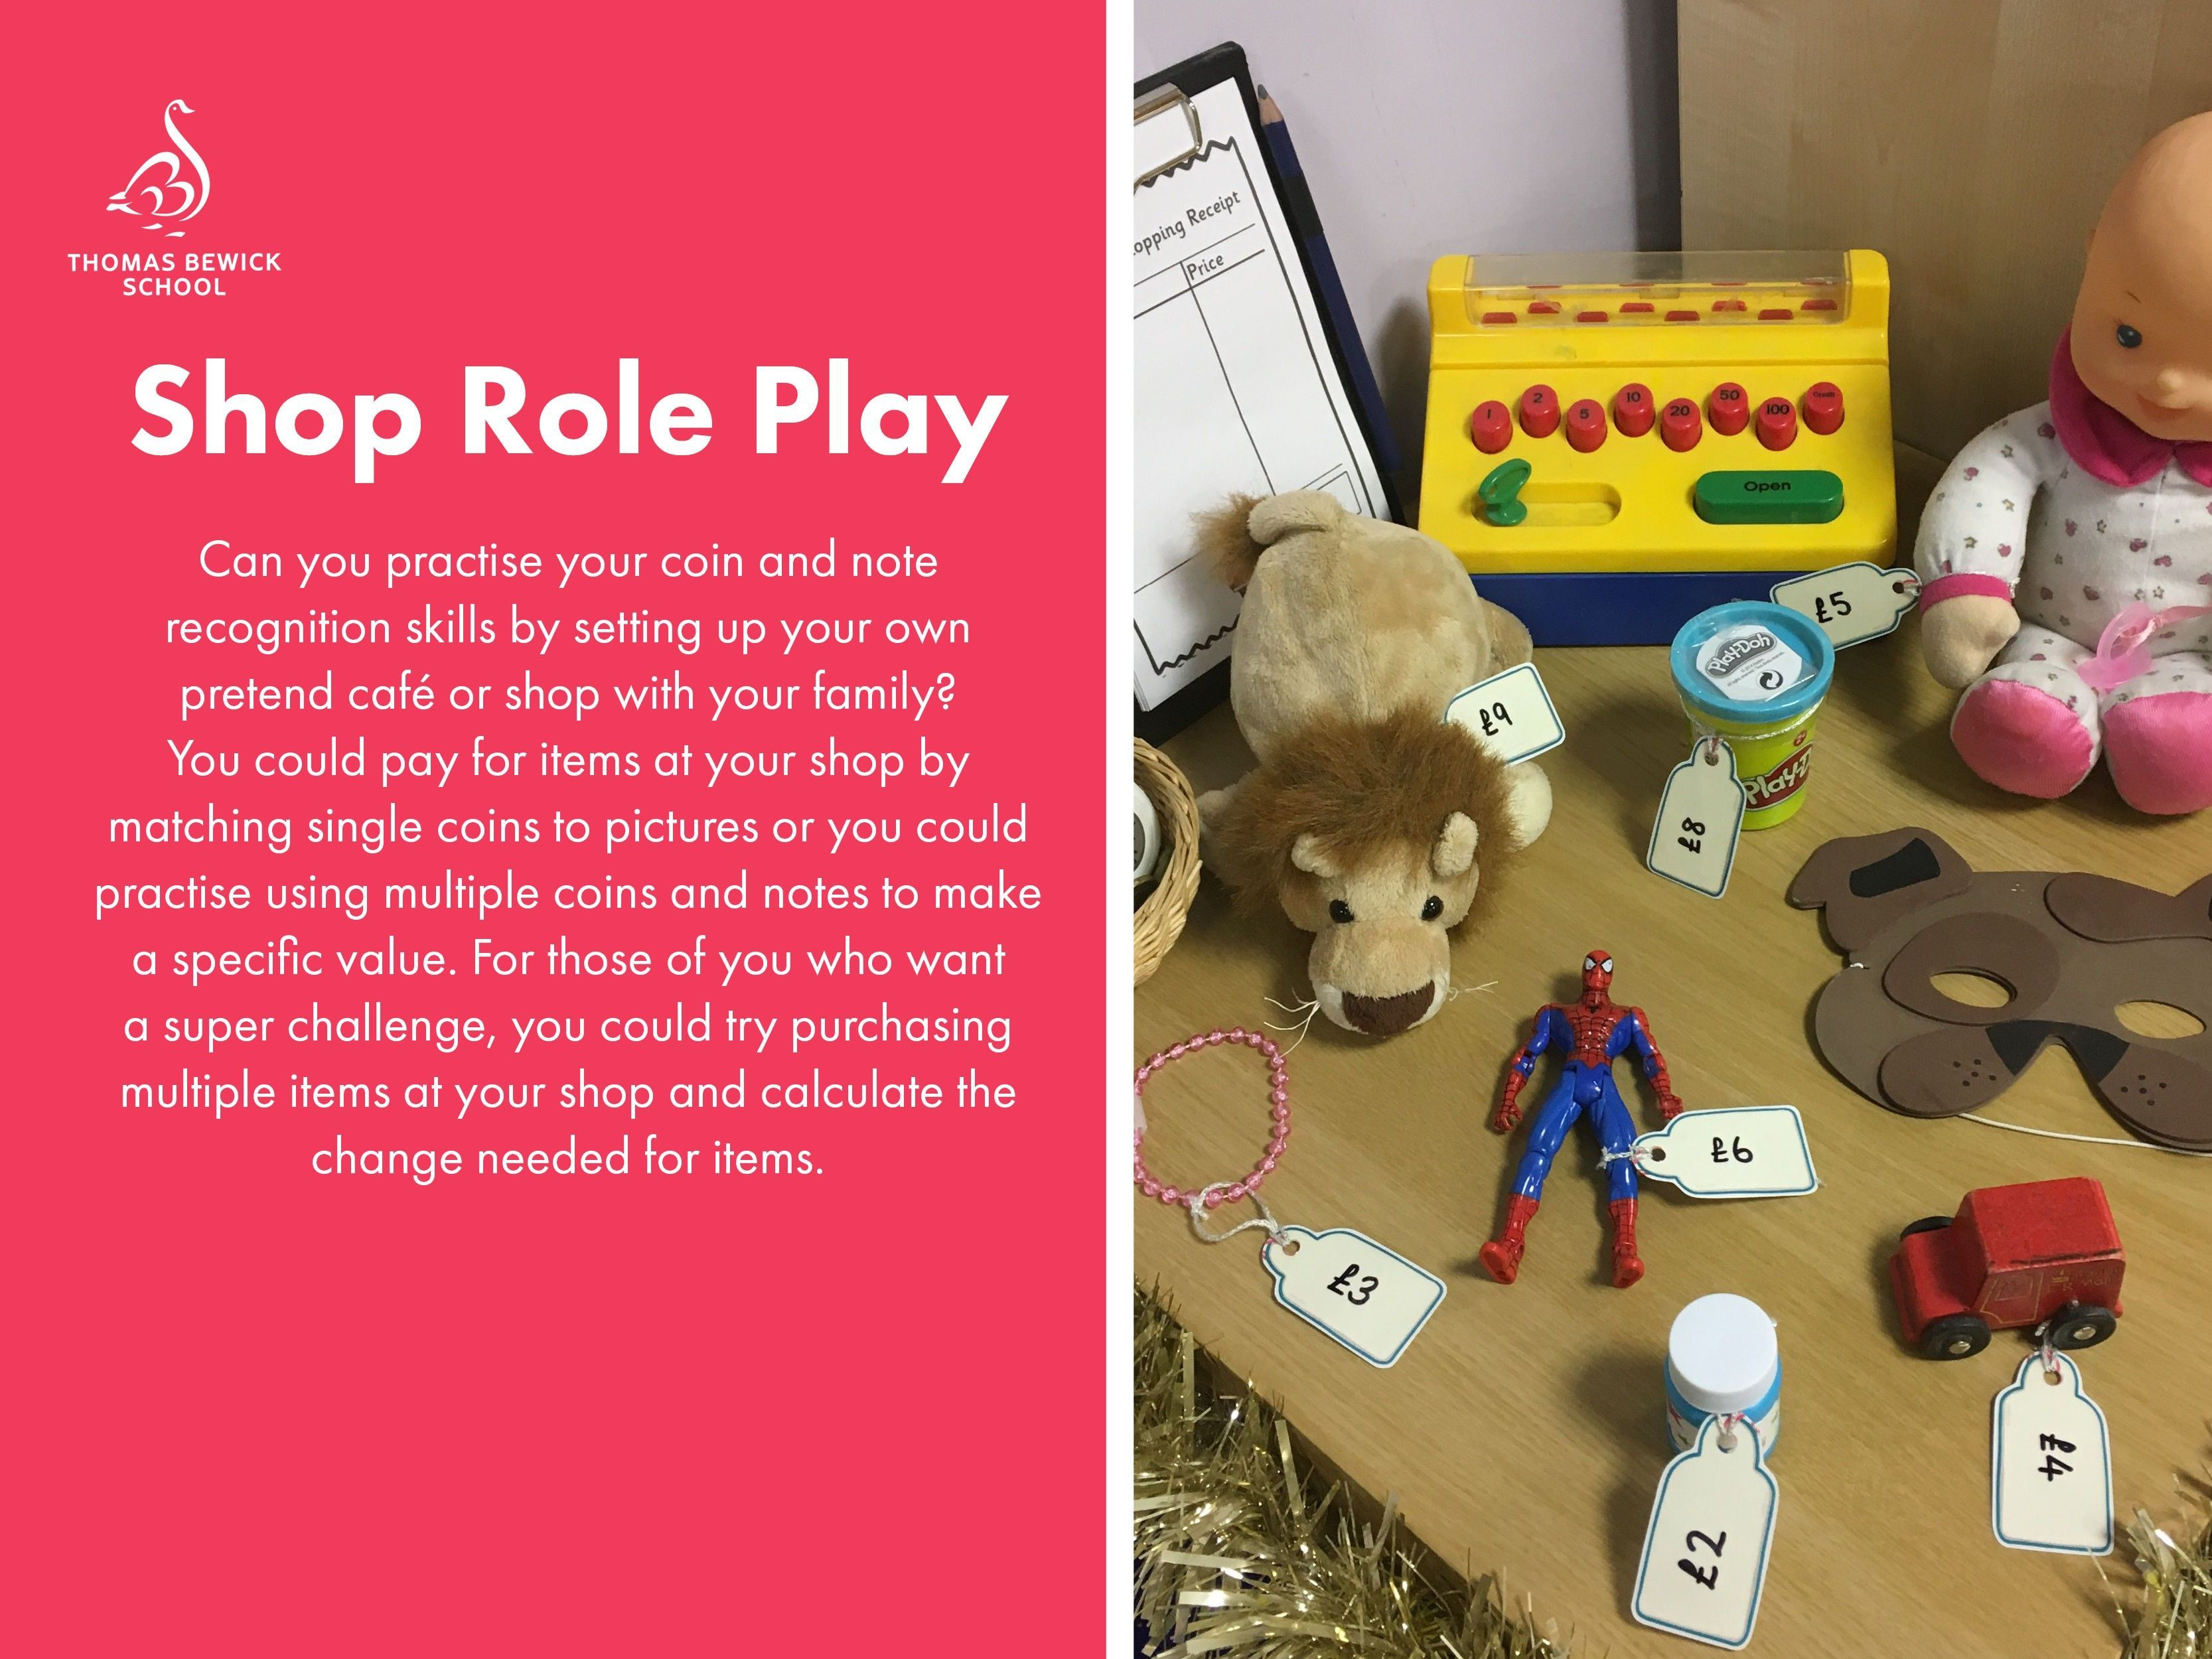 Shop Role Play